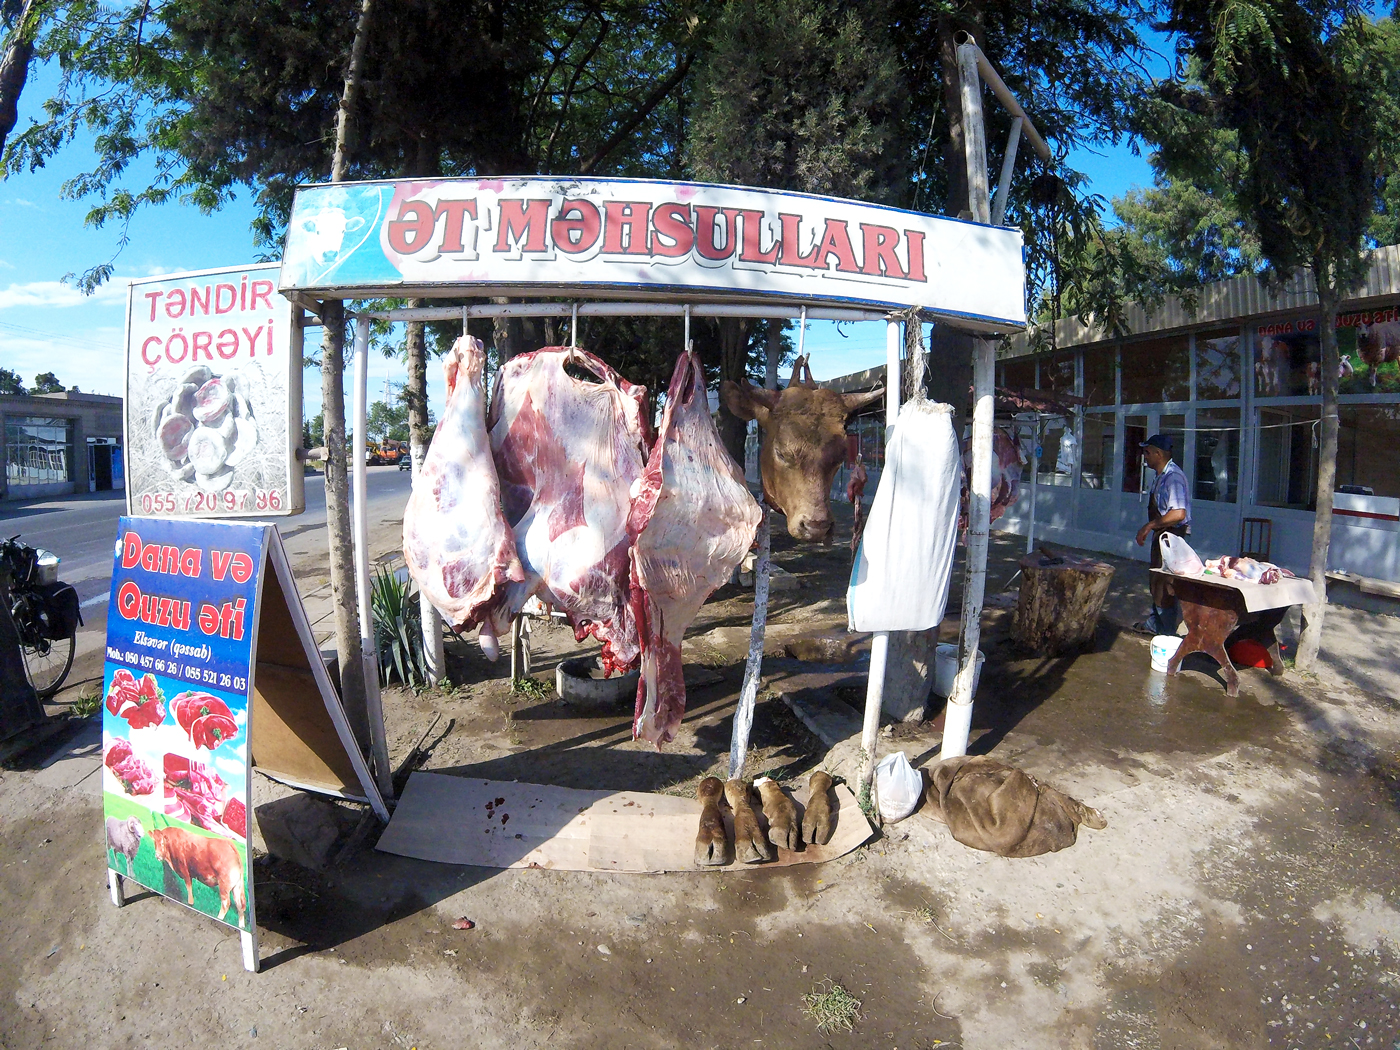 Cycling, Azerbaijan Cycling, crossing the Caucasus region by bicycle, butchering on the side of the road. Cycling travel, biketouring, cycling Caucasus, cycling Azerbaijan, butcher on the side of the road.